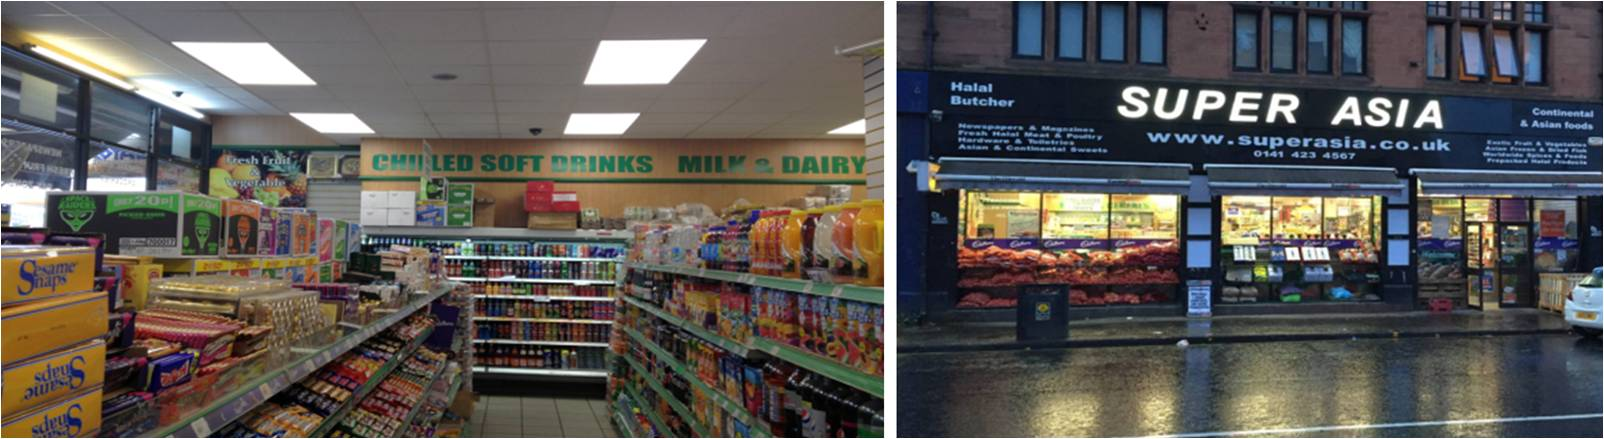 LED Distribution | Projects | Supermarket (Superasia) | Glasgow, Scotland